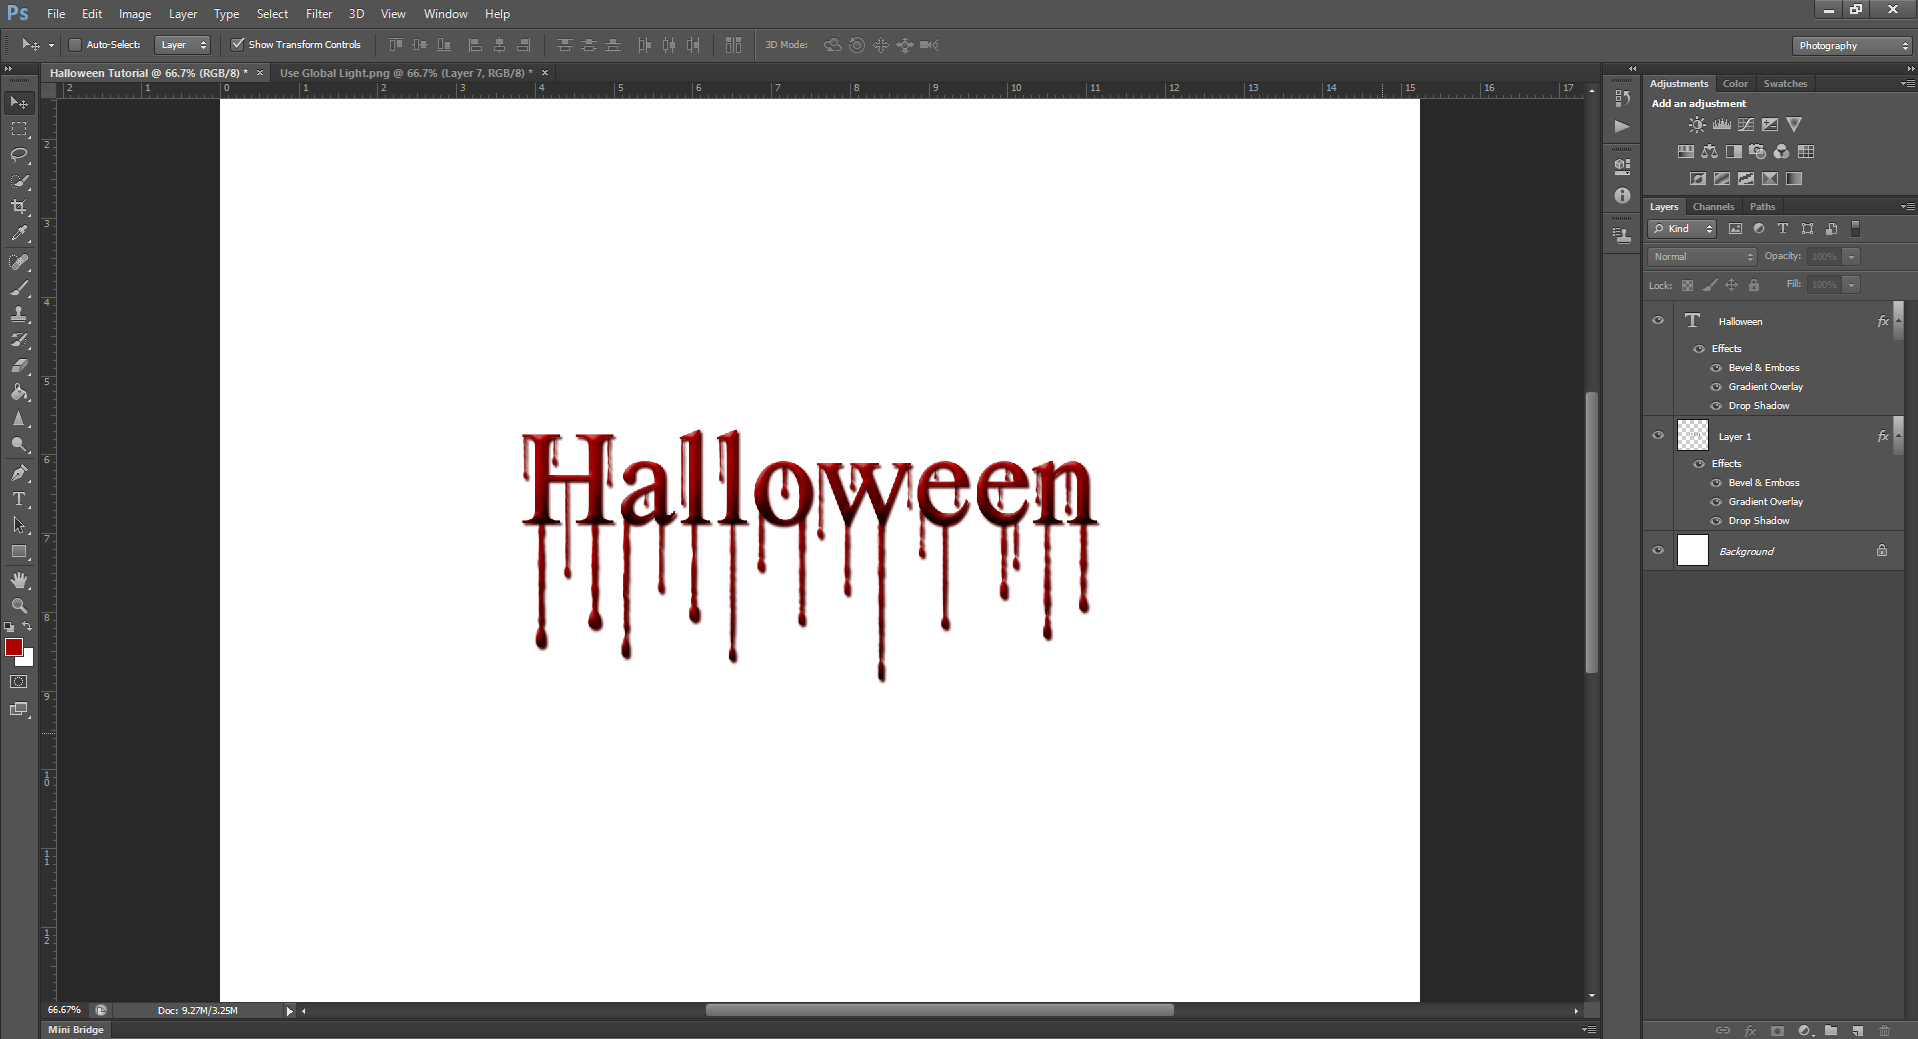 AterImber.com - Writing Tips - PHSH Effect Seris - PHSH Effect 13 - Blood Drips - Gradient Overlay Halloween - phsh, photoshop, phsh tutorial, photoshop tutorial